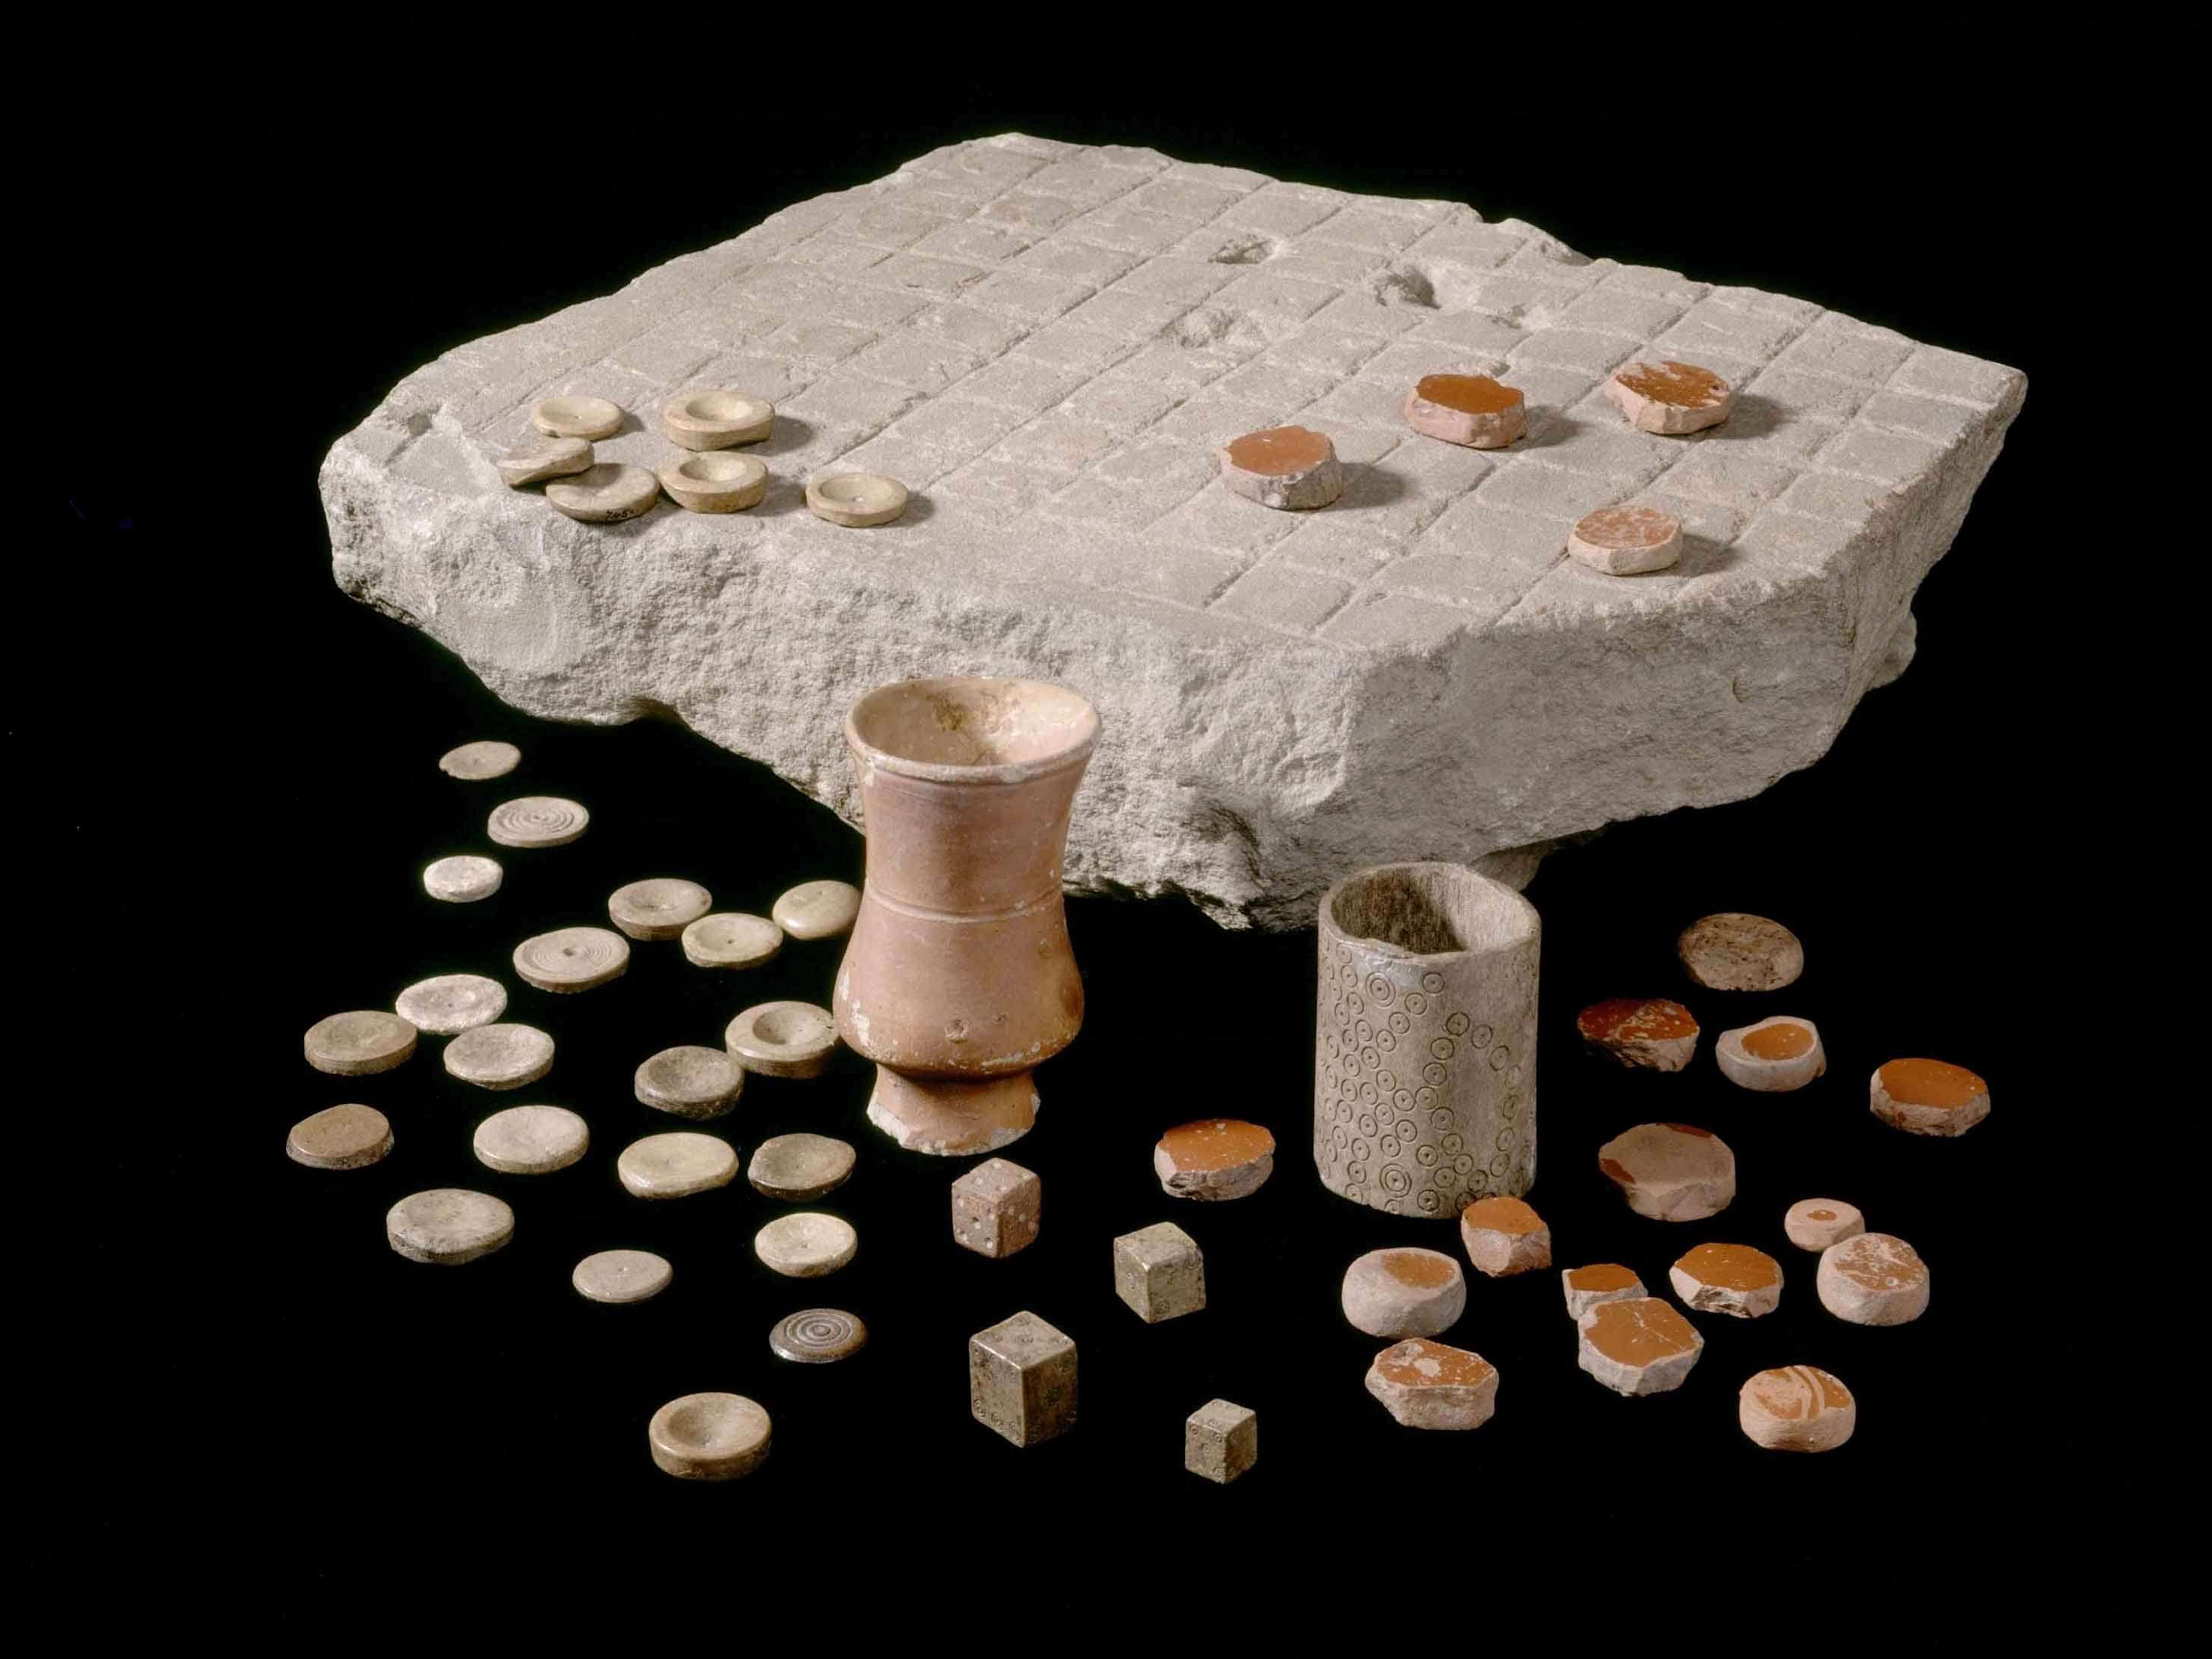 Latrunculi found at Housesteads Roman Fort or Roman Corbridge, complete with pottery counters and dice containers. 2nd-3rd century CE. Corbridge Roman Town and Museum, English Hertitage.